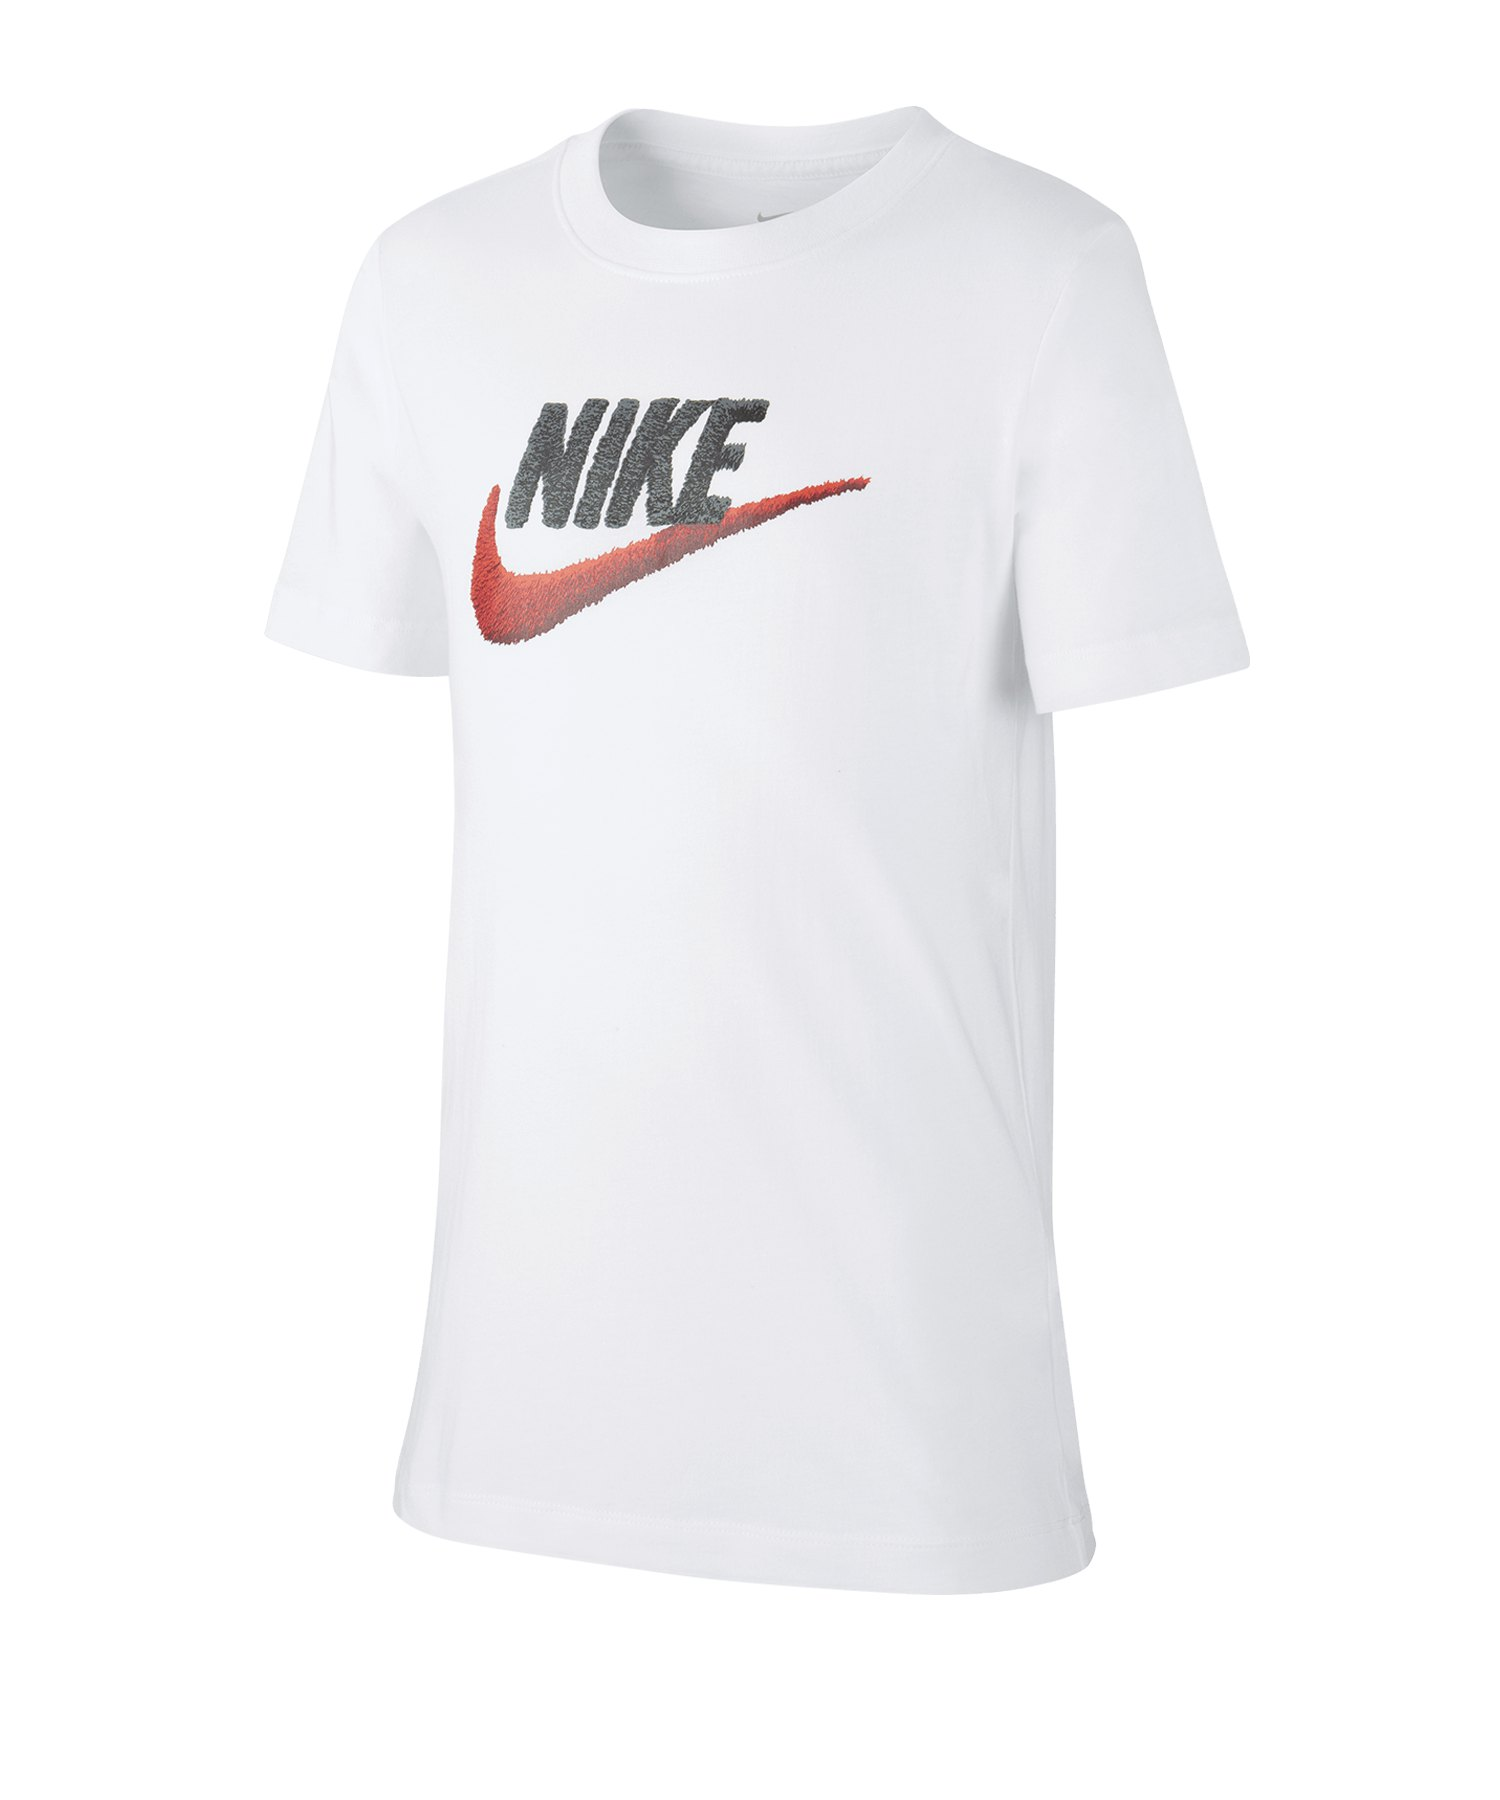 Nike Faux Embroidery Tee T-Shirt Kids Weiss F100 - weiss